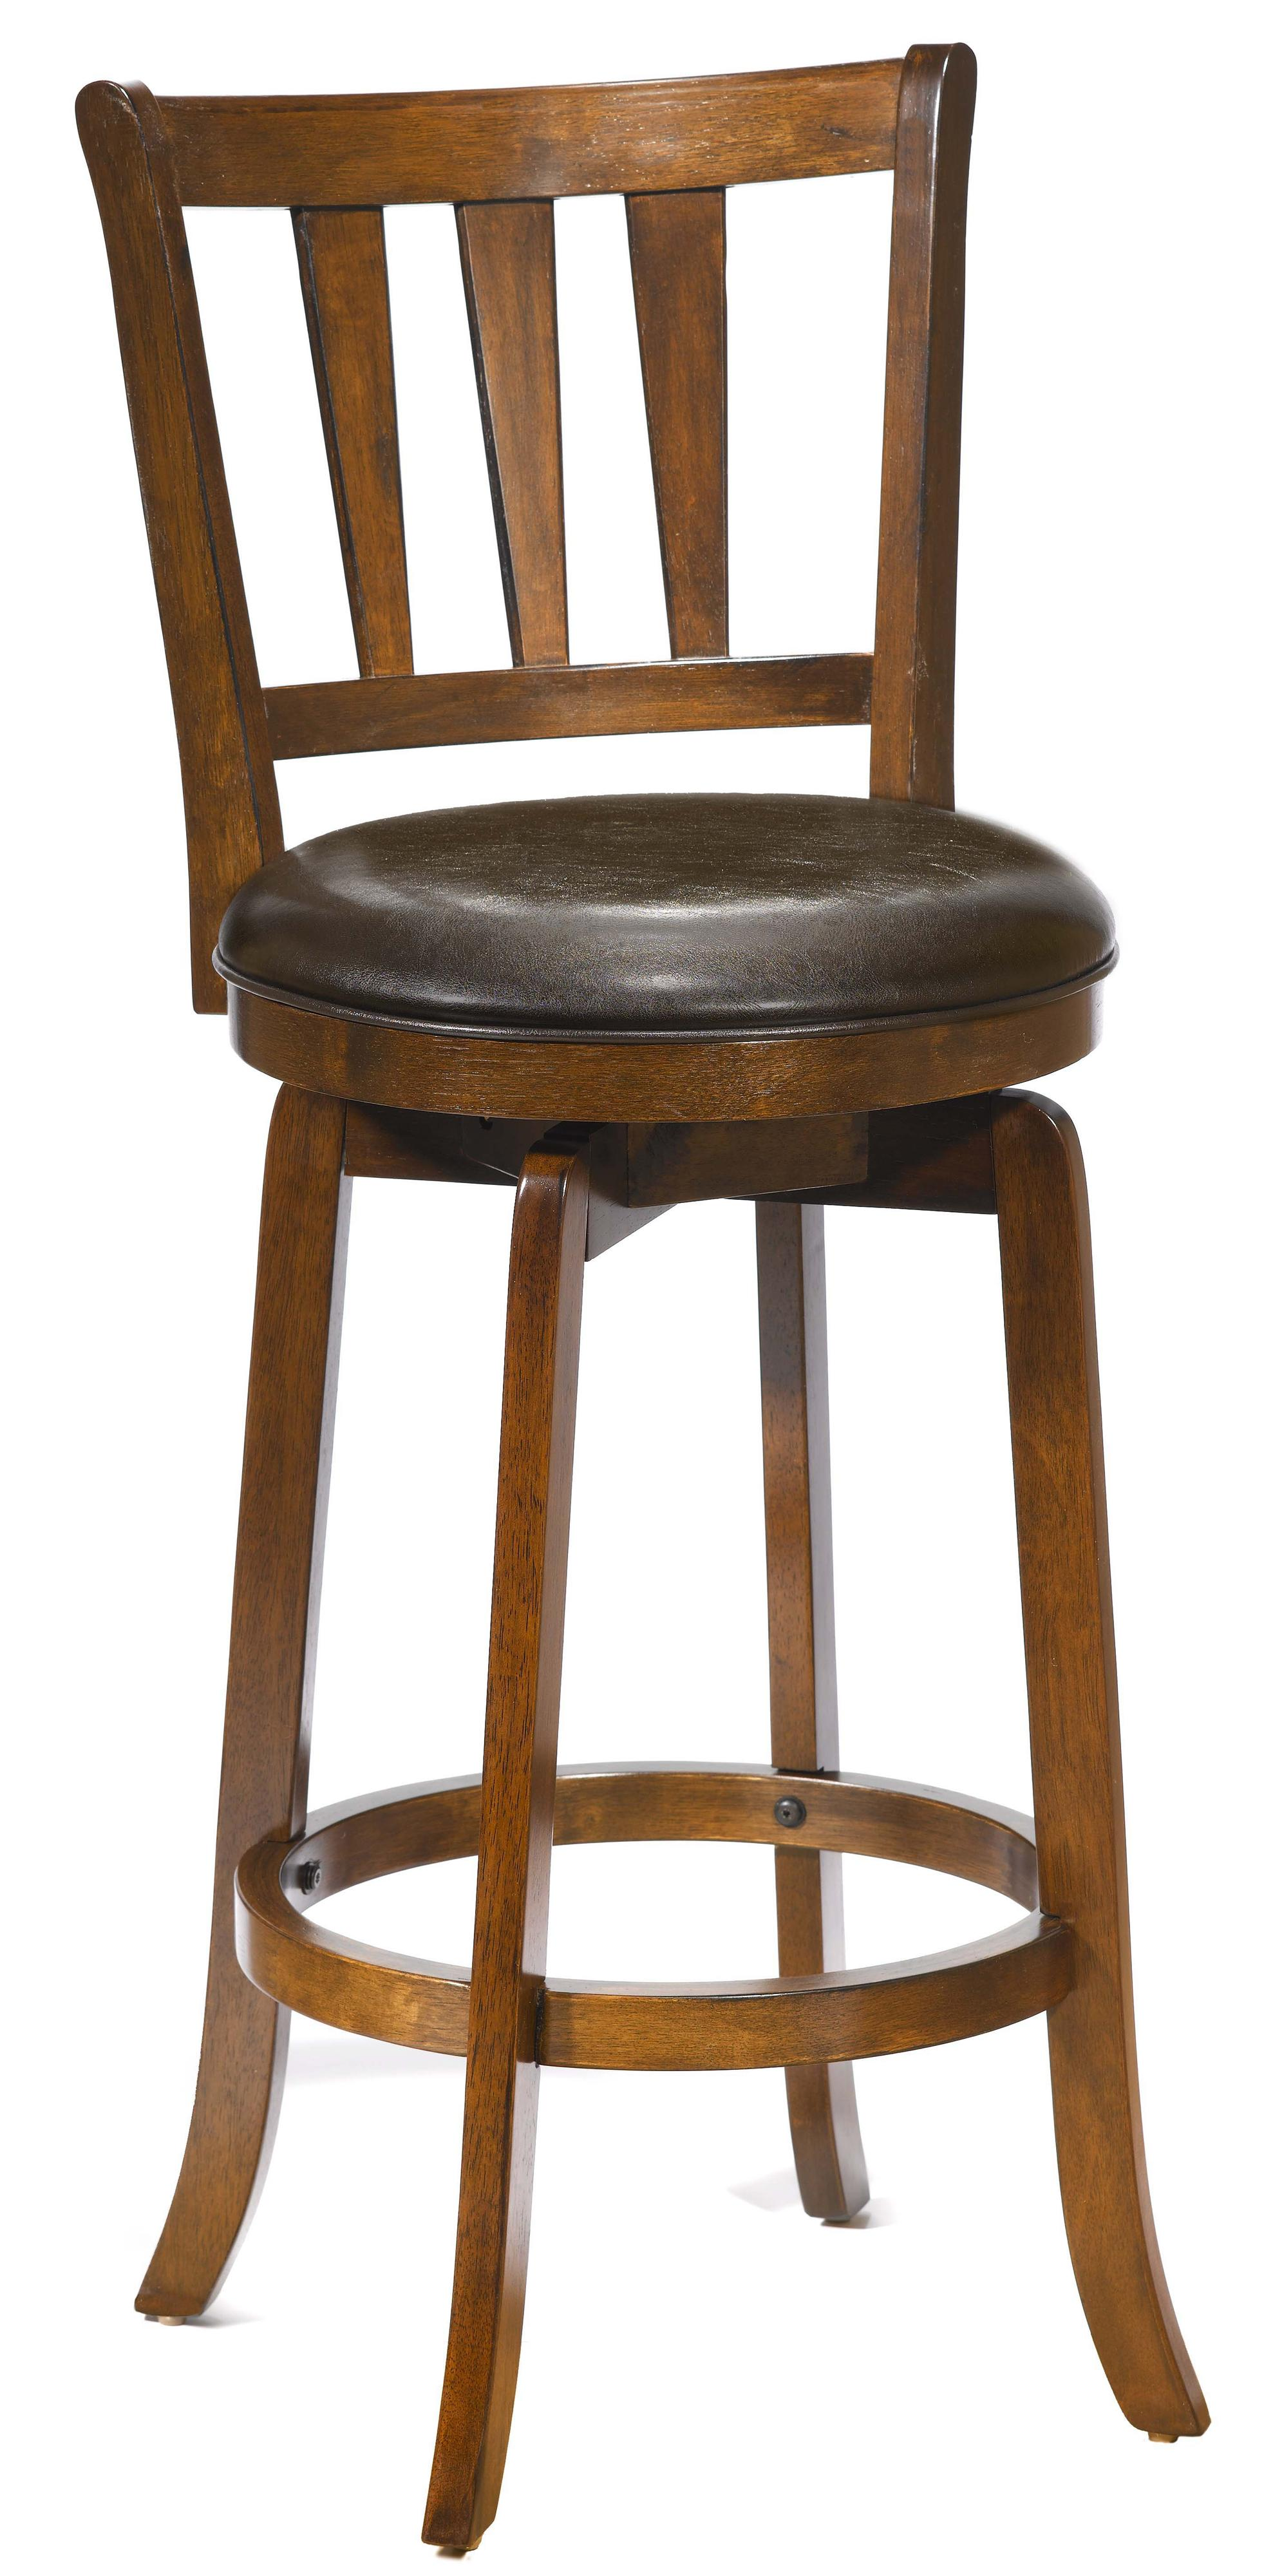 26 Counter Height Presque Isle Swivel Bar Stool by